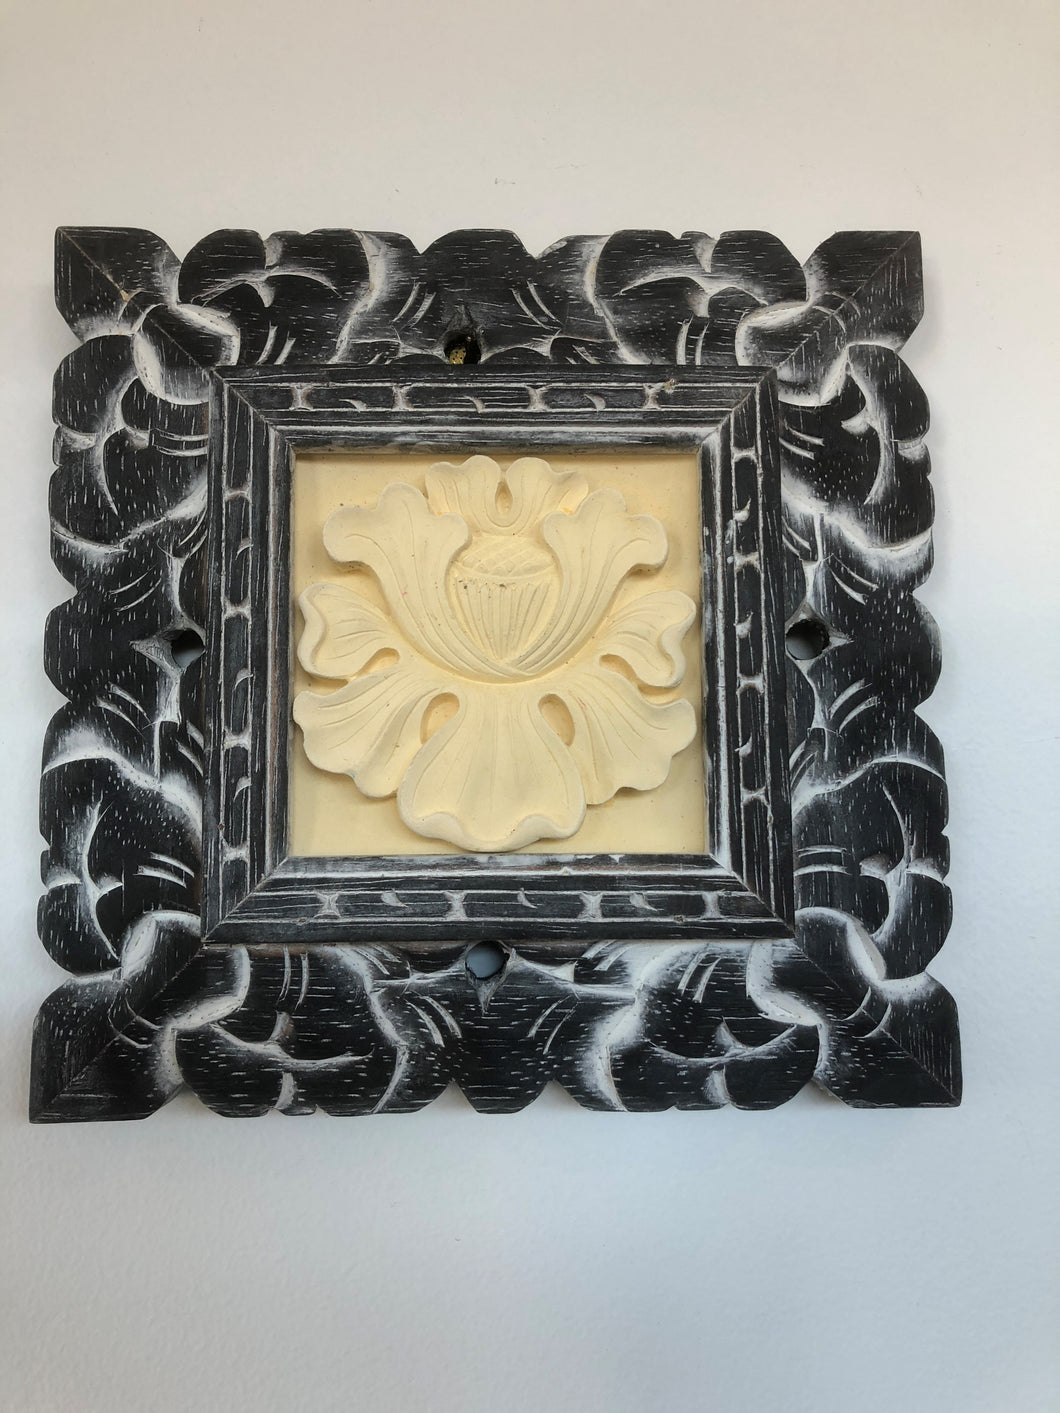 Balinese Hand Carved Limestone Flower Wall Tile in Timber Frame - #1173